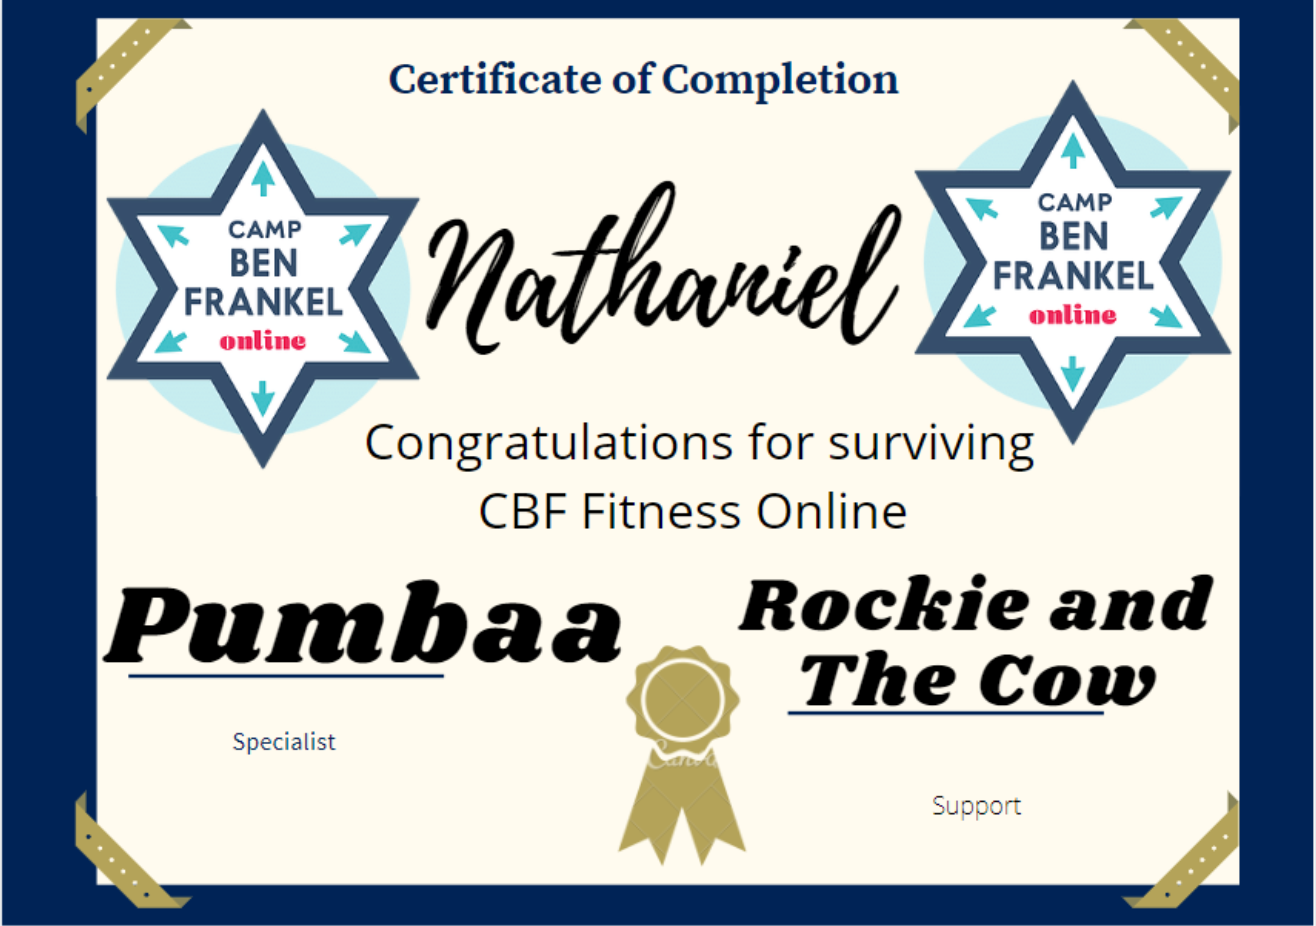 Nathaniel - Certificate of Completion